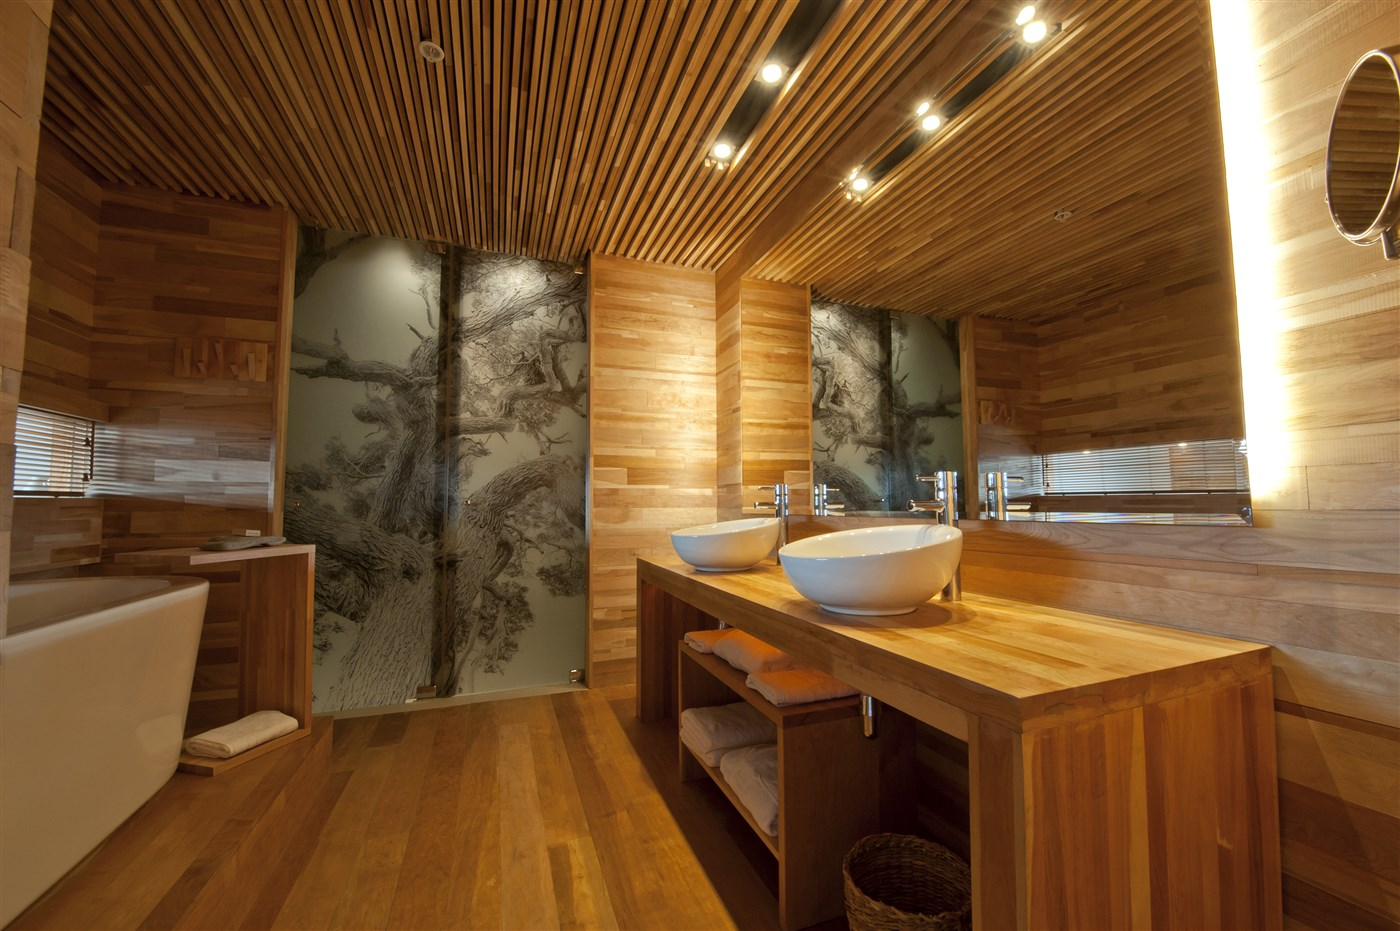 Wood floor, wall and ceiling design ideas, bathroom